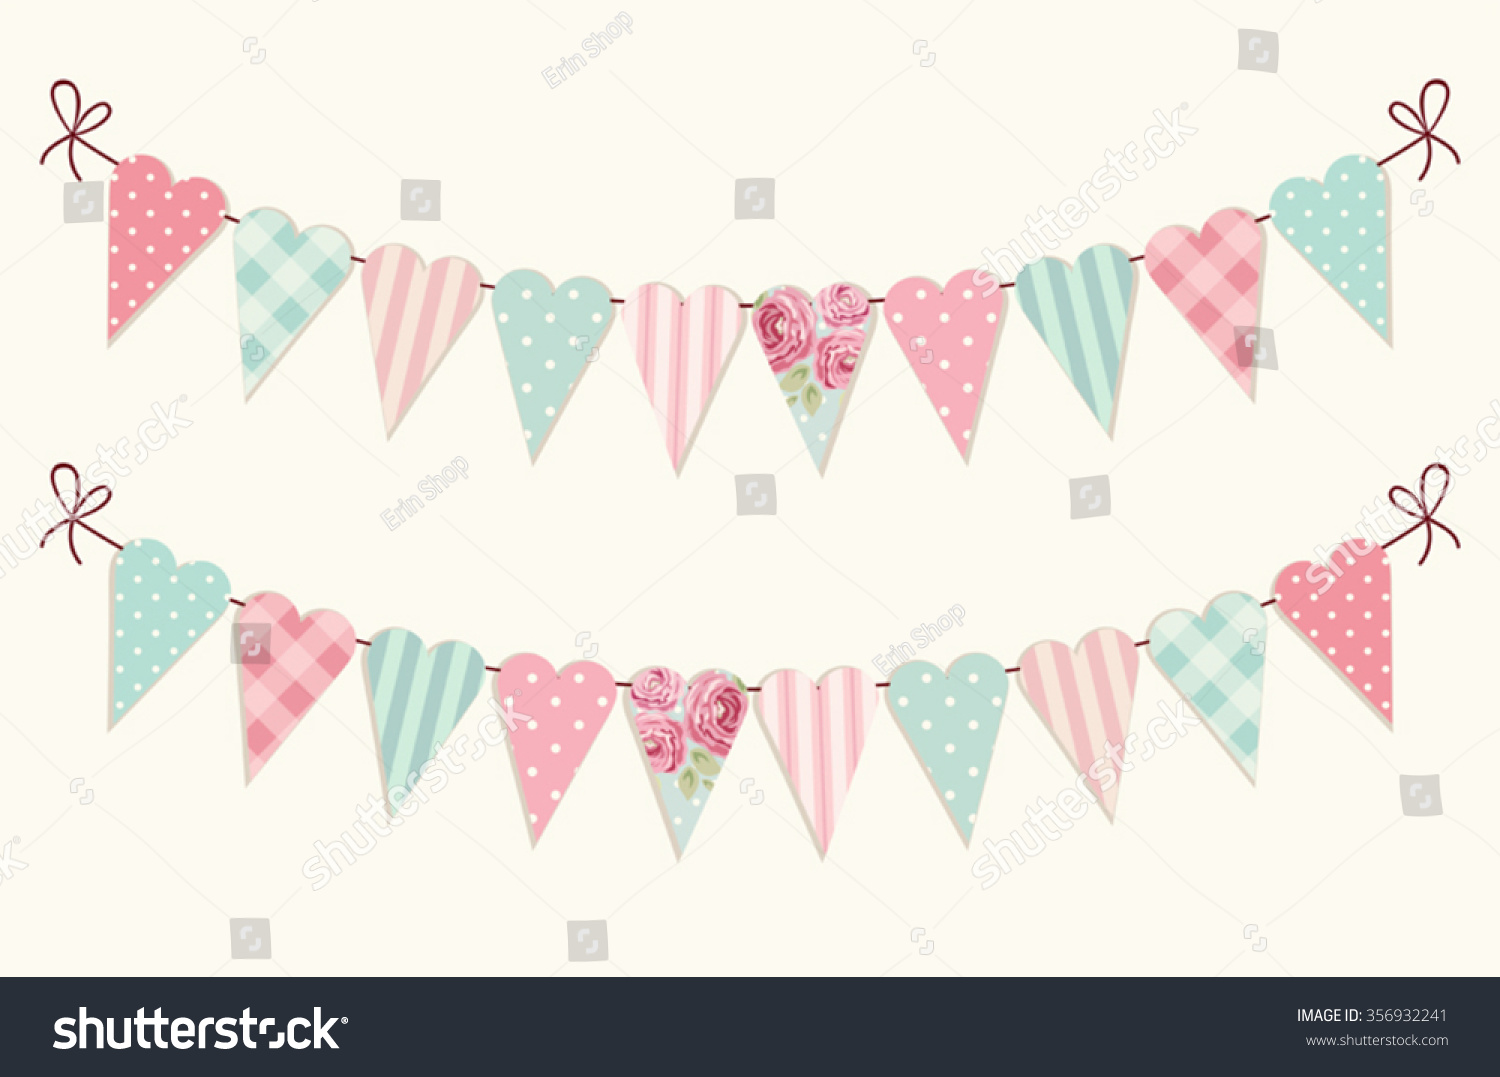 Vector bunting flags lovely celebration card with colorful paper - Cute Vintage Heart Shaped Shabby Chic Textile Bunting Flags Ideal For Valentines Day Wedding